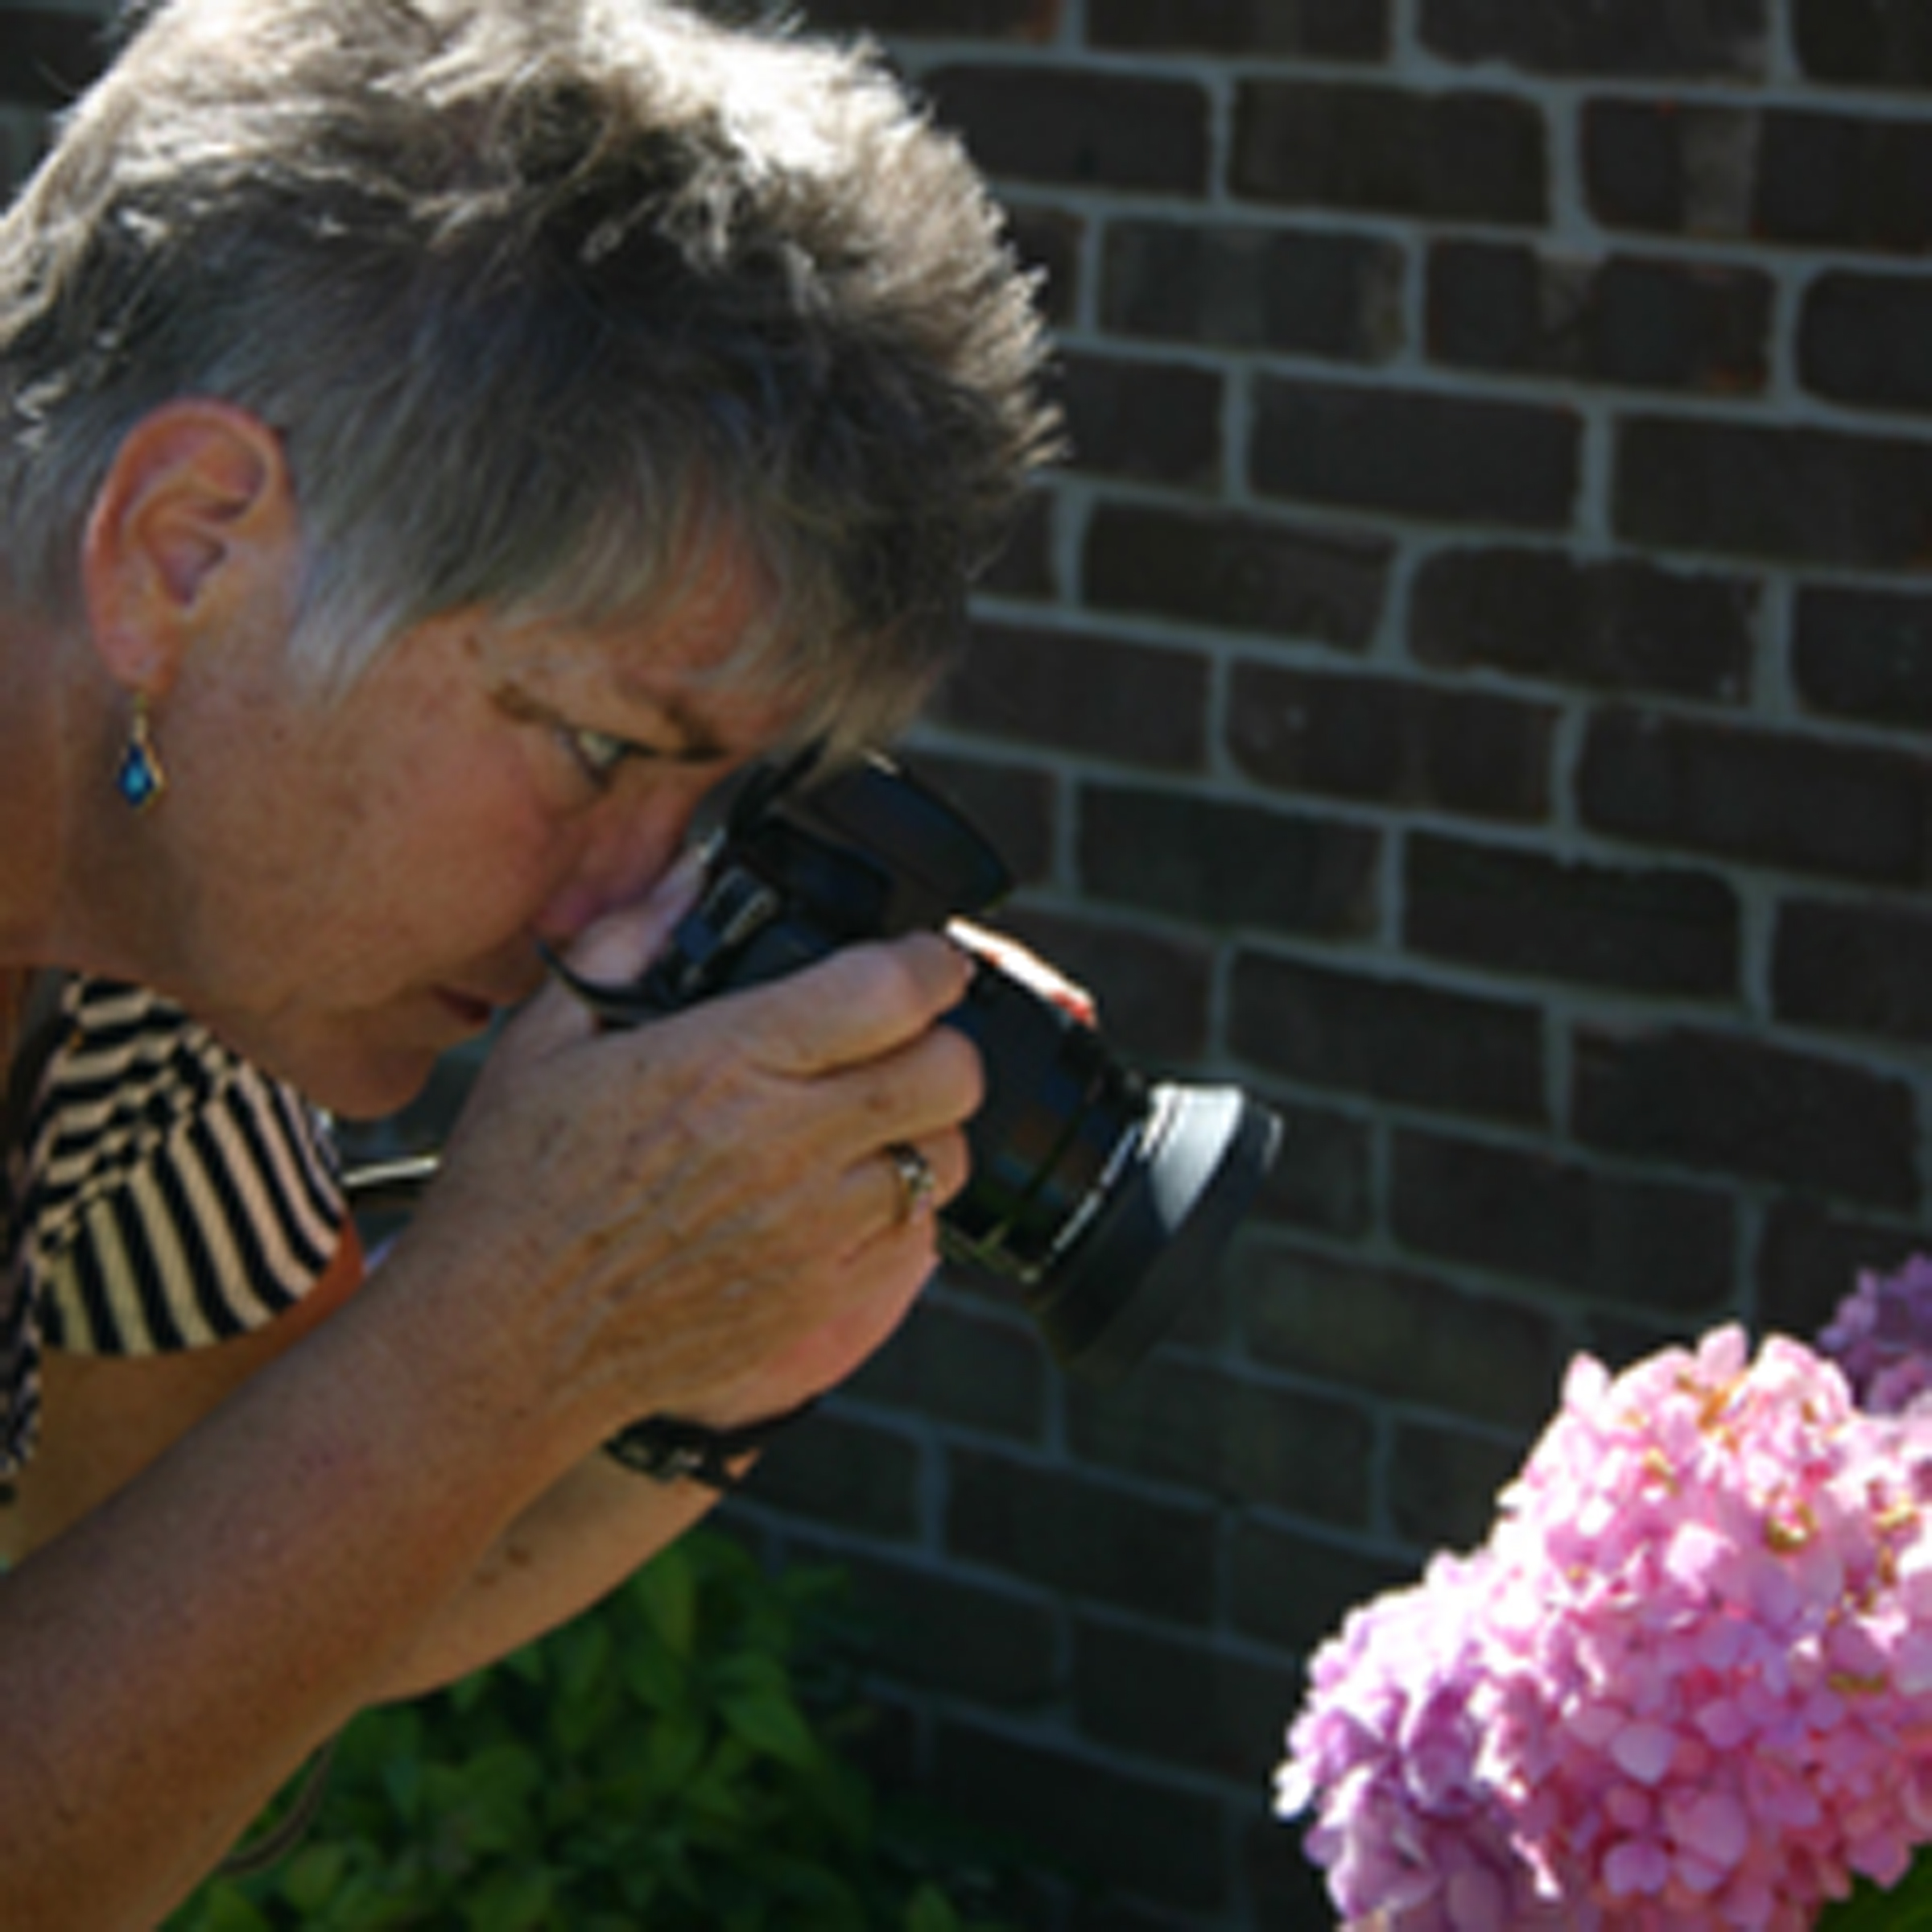 Patricia Brock taking a photo with her camera.